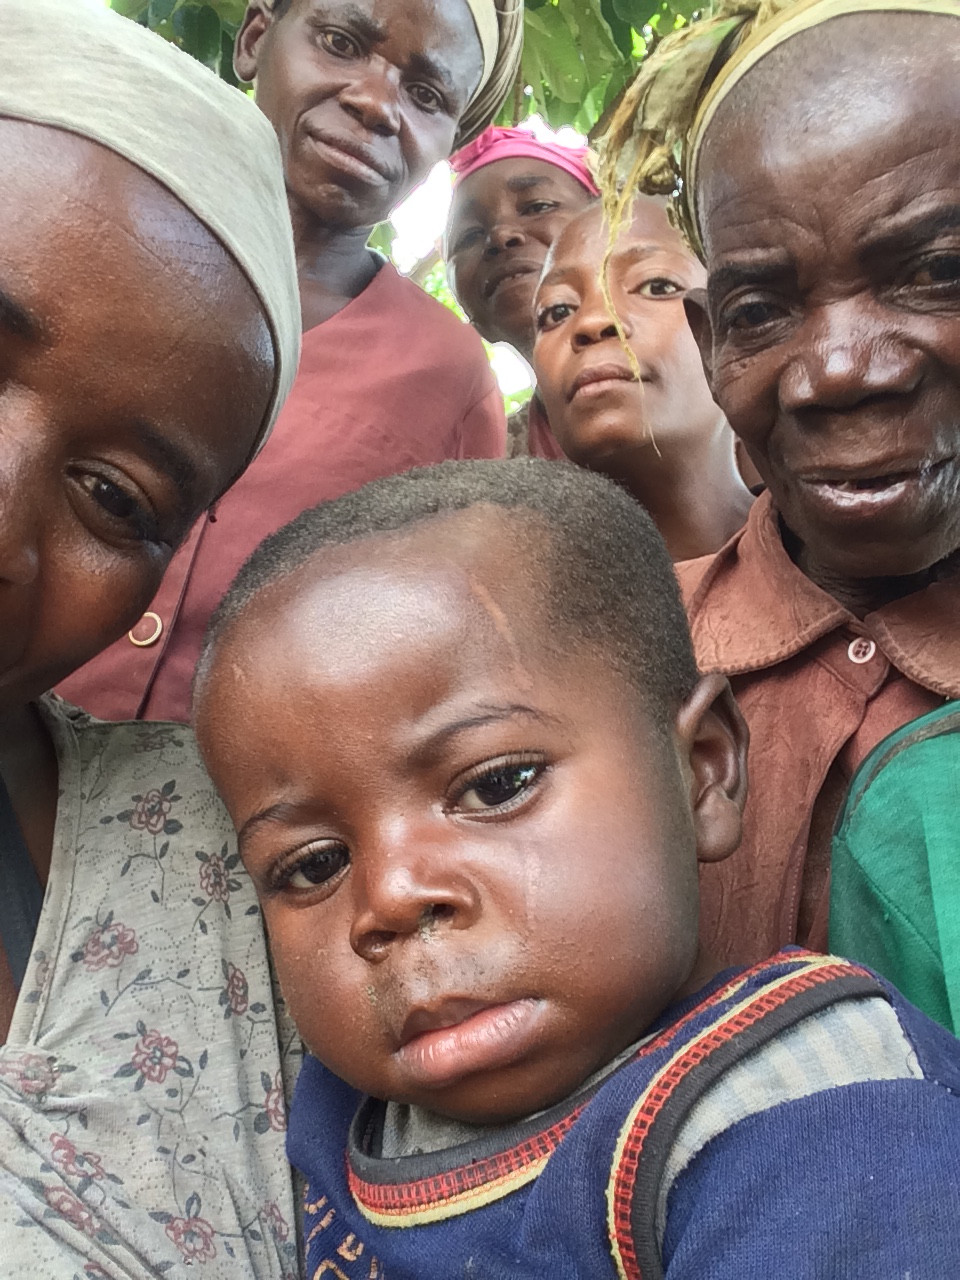 The Pygmies seeing a camera for the first time